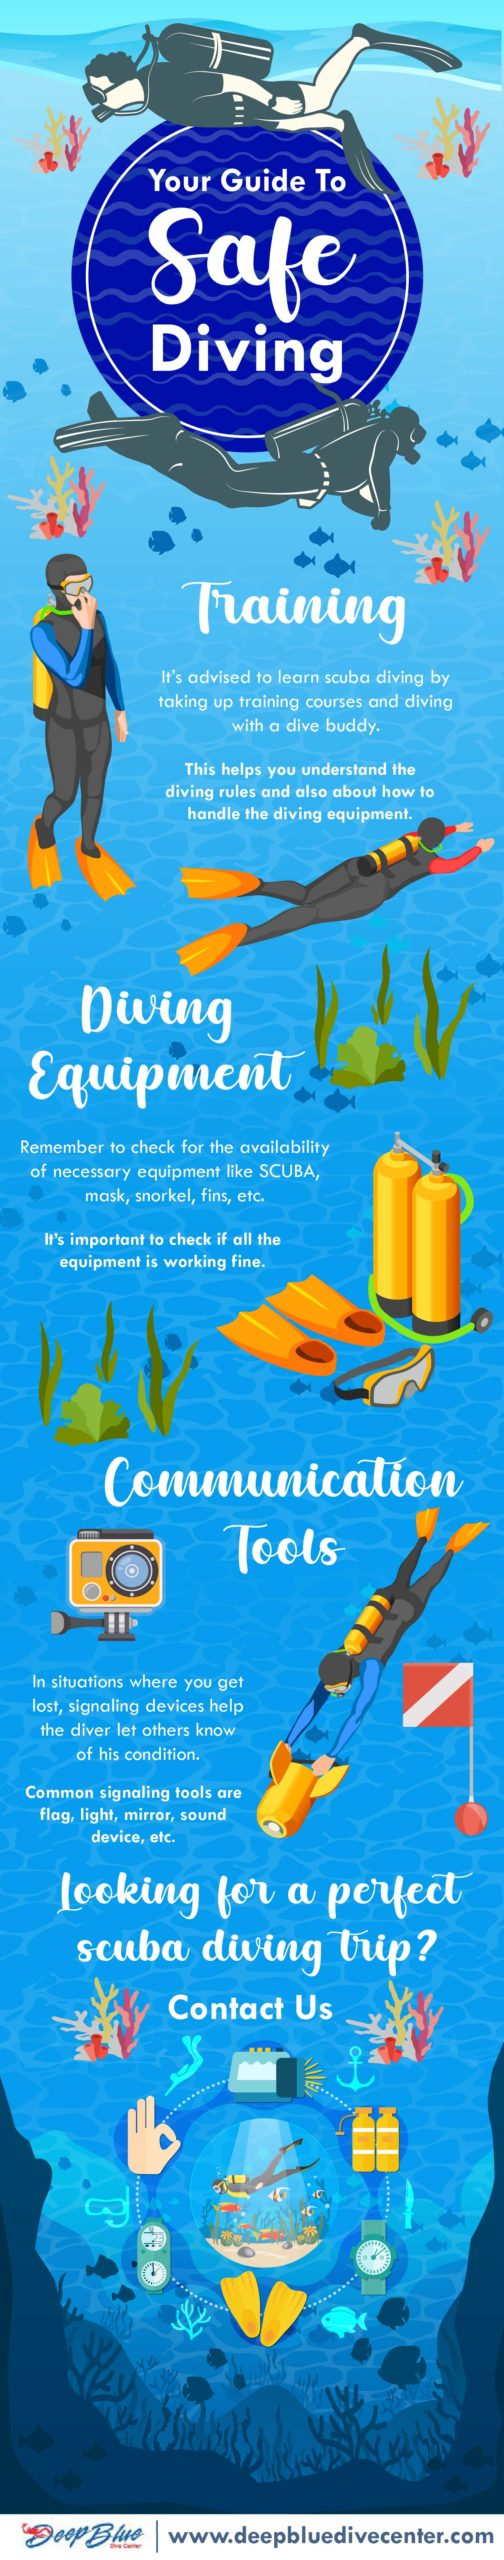 Your Guide to Safe Diving